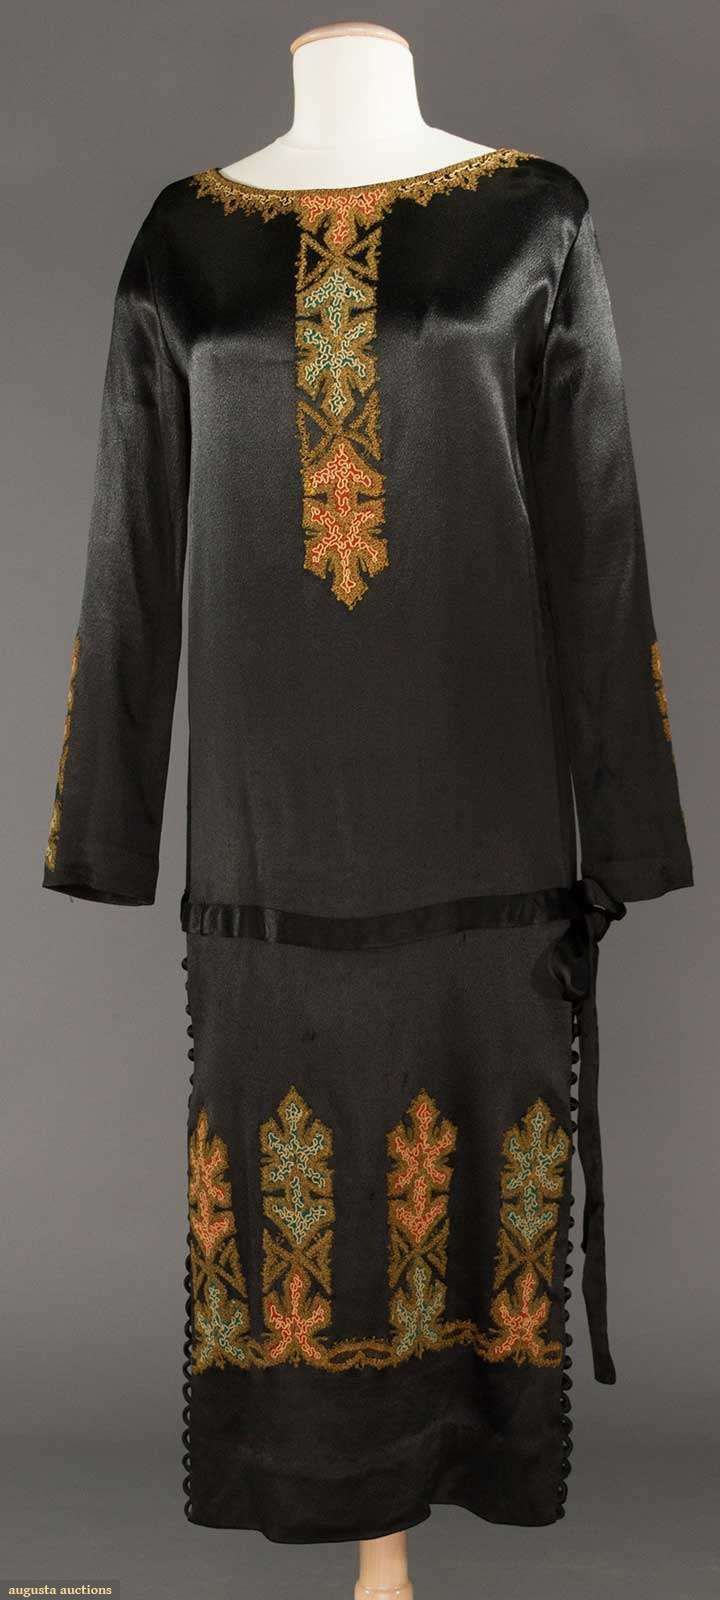 EMBROIDERED BLACK DINNER DRESS, c. 1924 Silk satin dress adorned w/ panels of stylized blossoms in orange & olive, skirt sides w/ H to hem row of self covered buttons